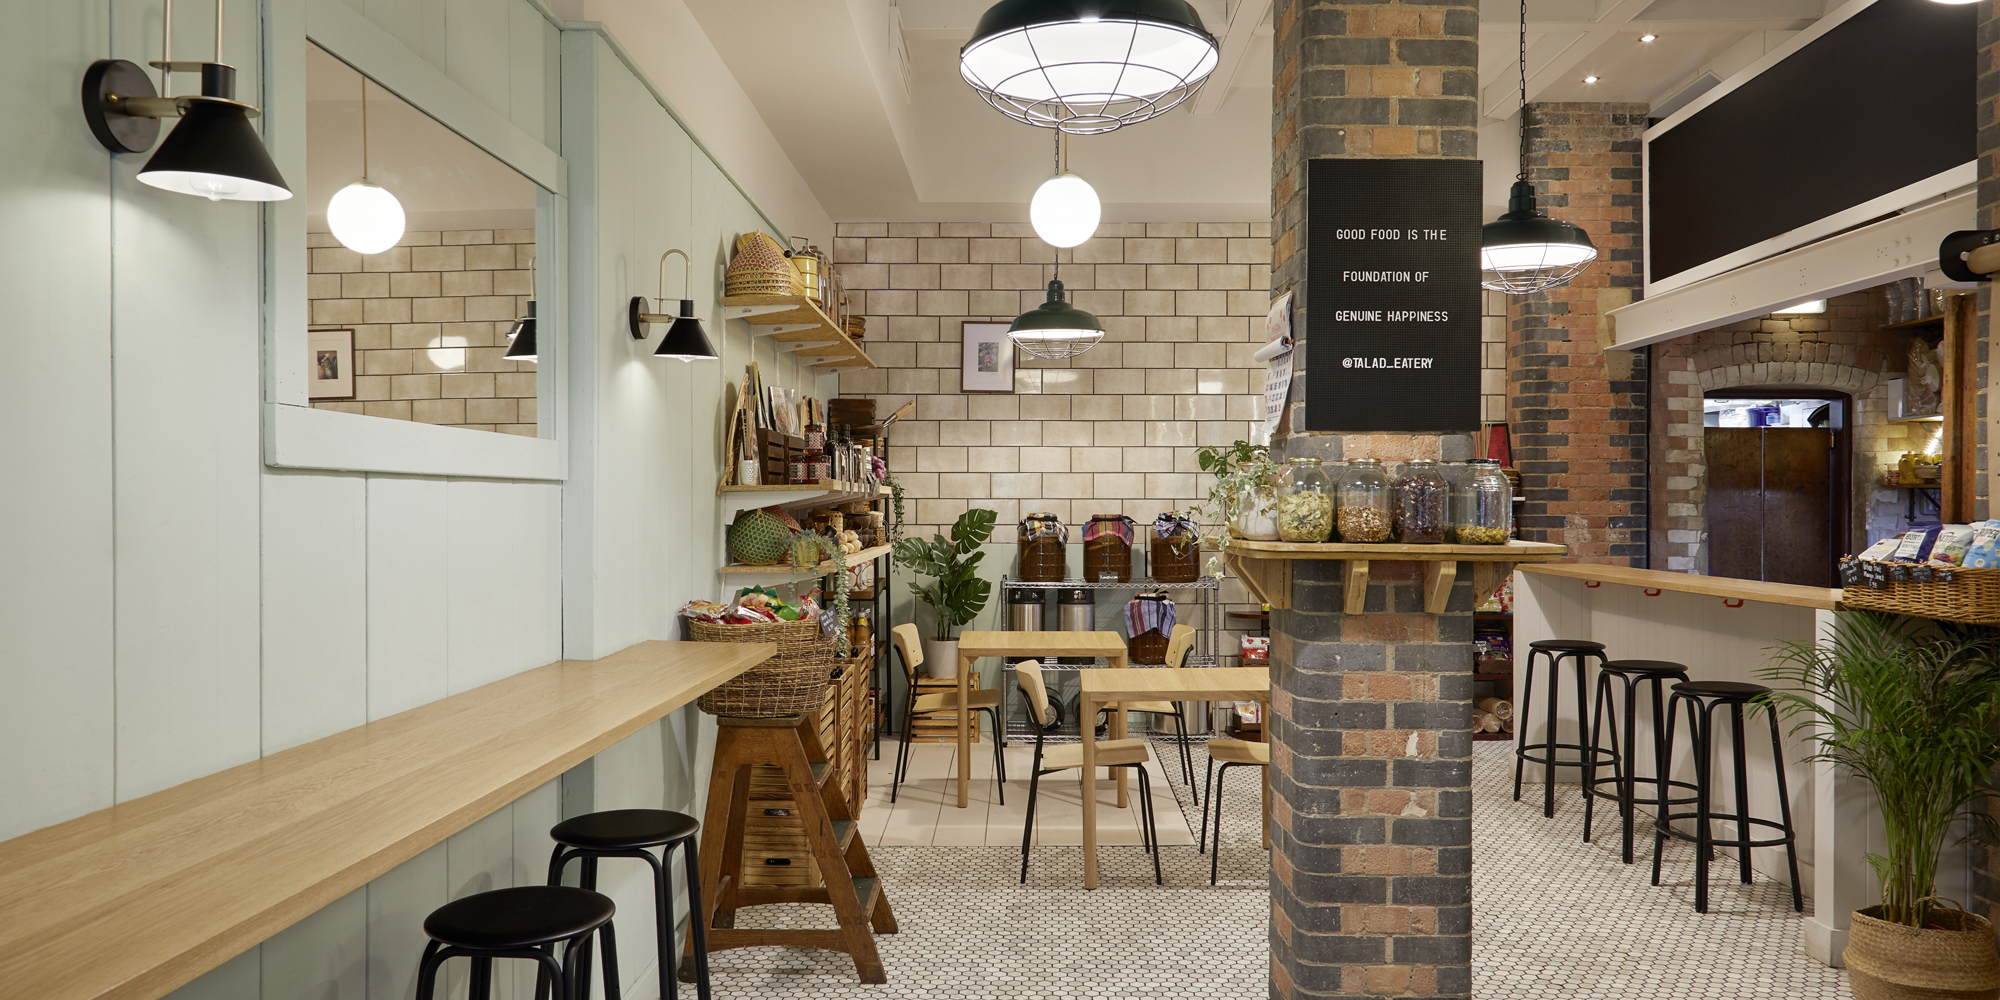 20210208 TaladEatery-025_Cropped